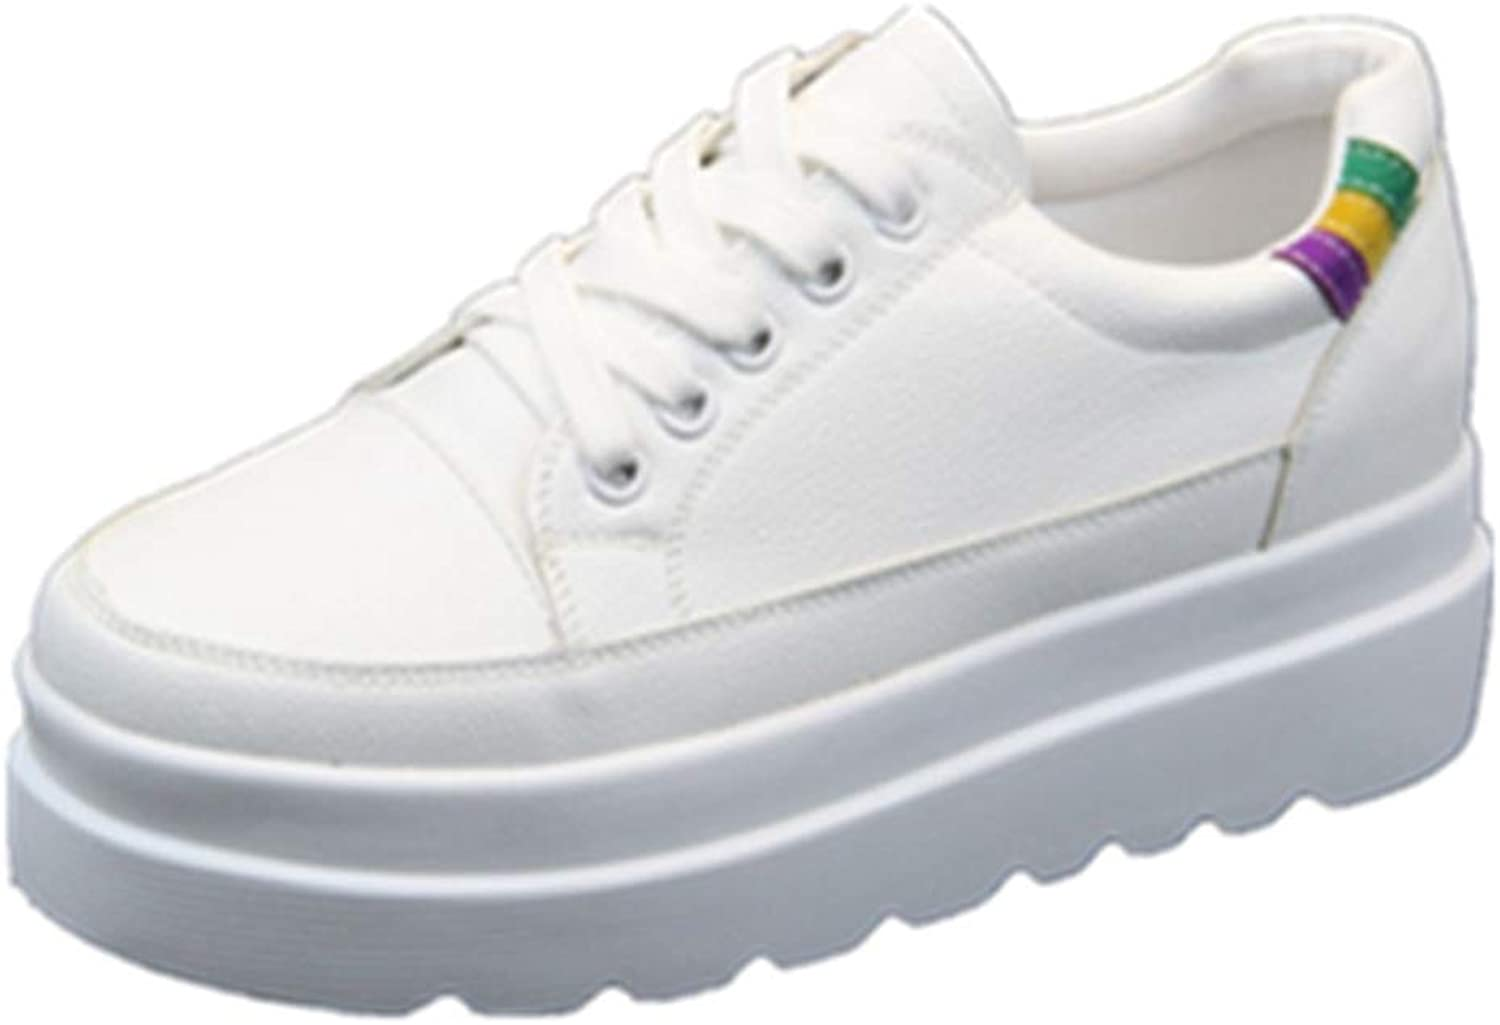 Hoxekle Woman Wedge Platform Sneakers Flat Heel Height Increasing Female Lace Up Casual Walking White Canvas Soft shoes